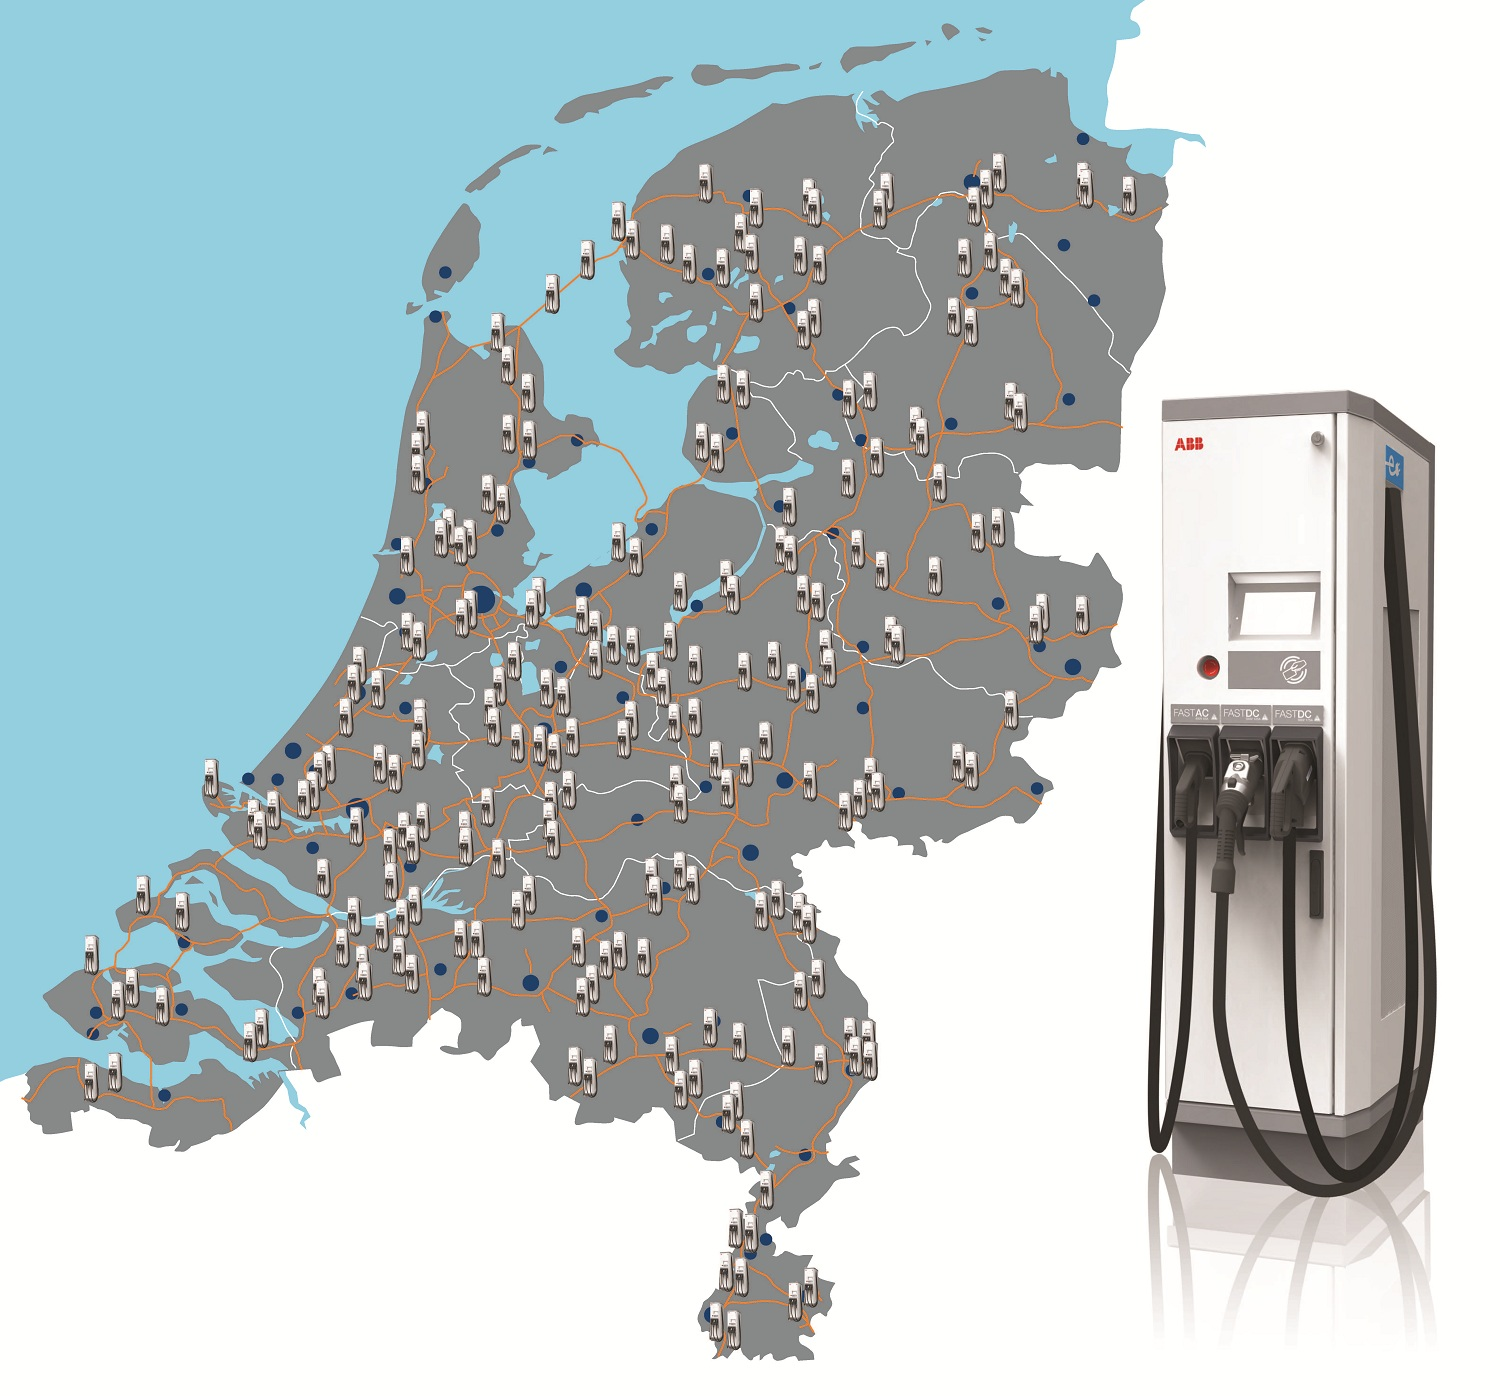 abb-charge-point